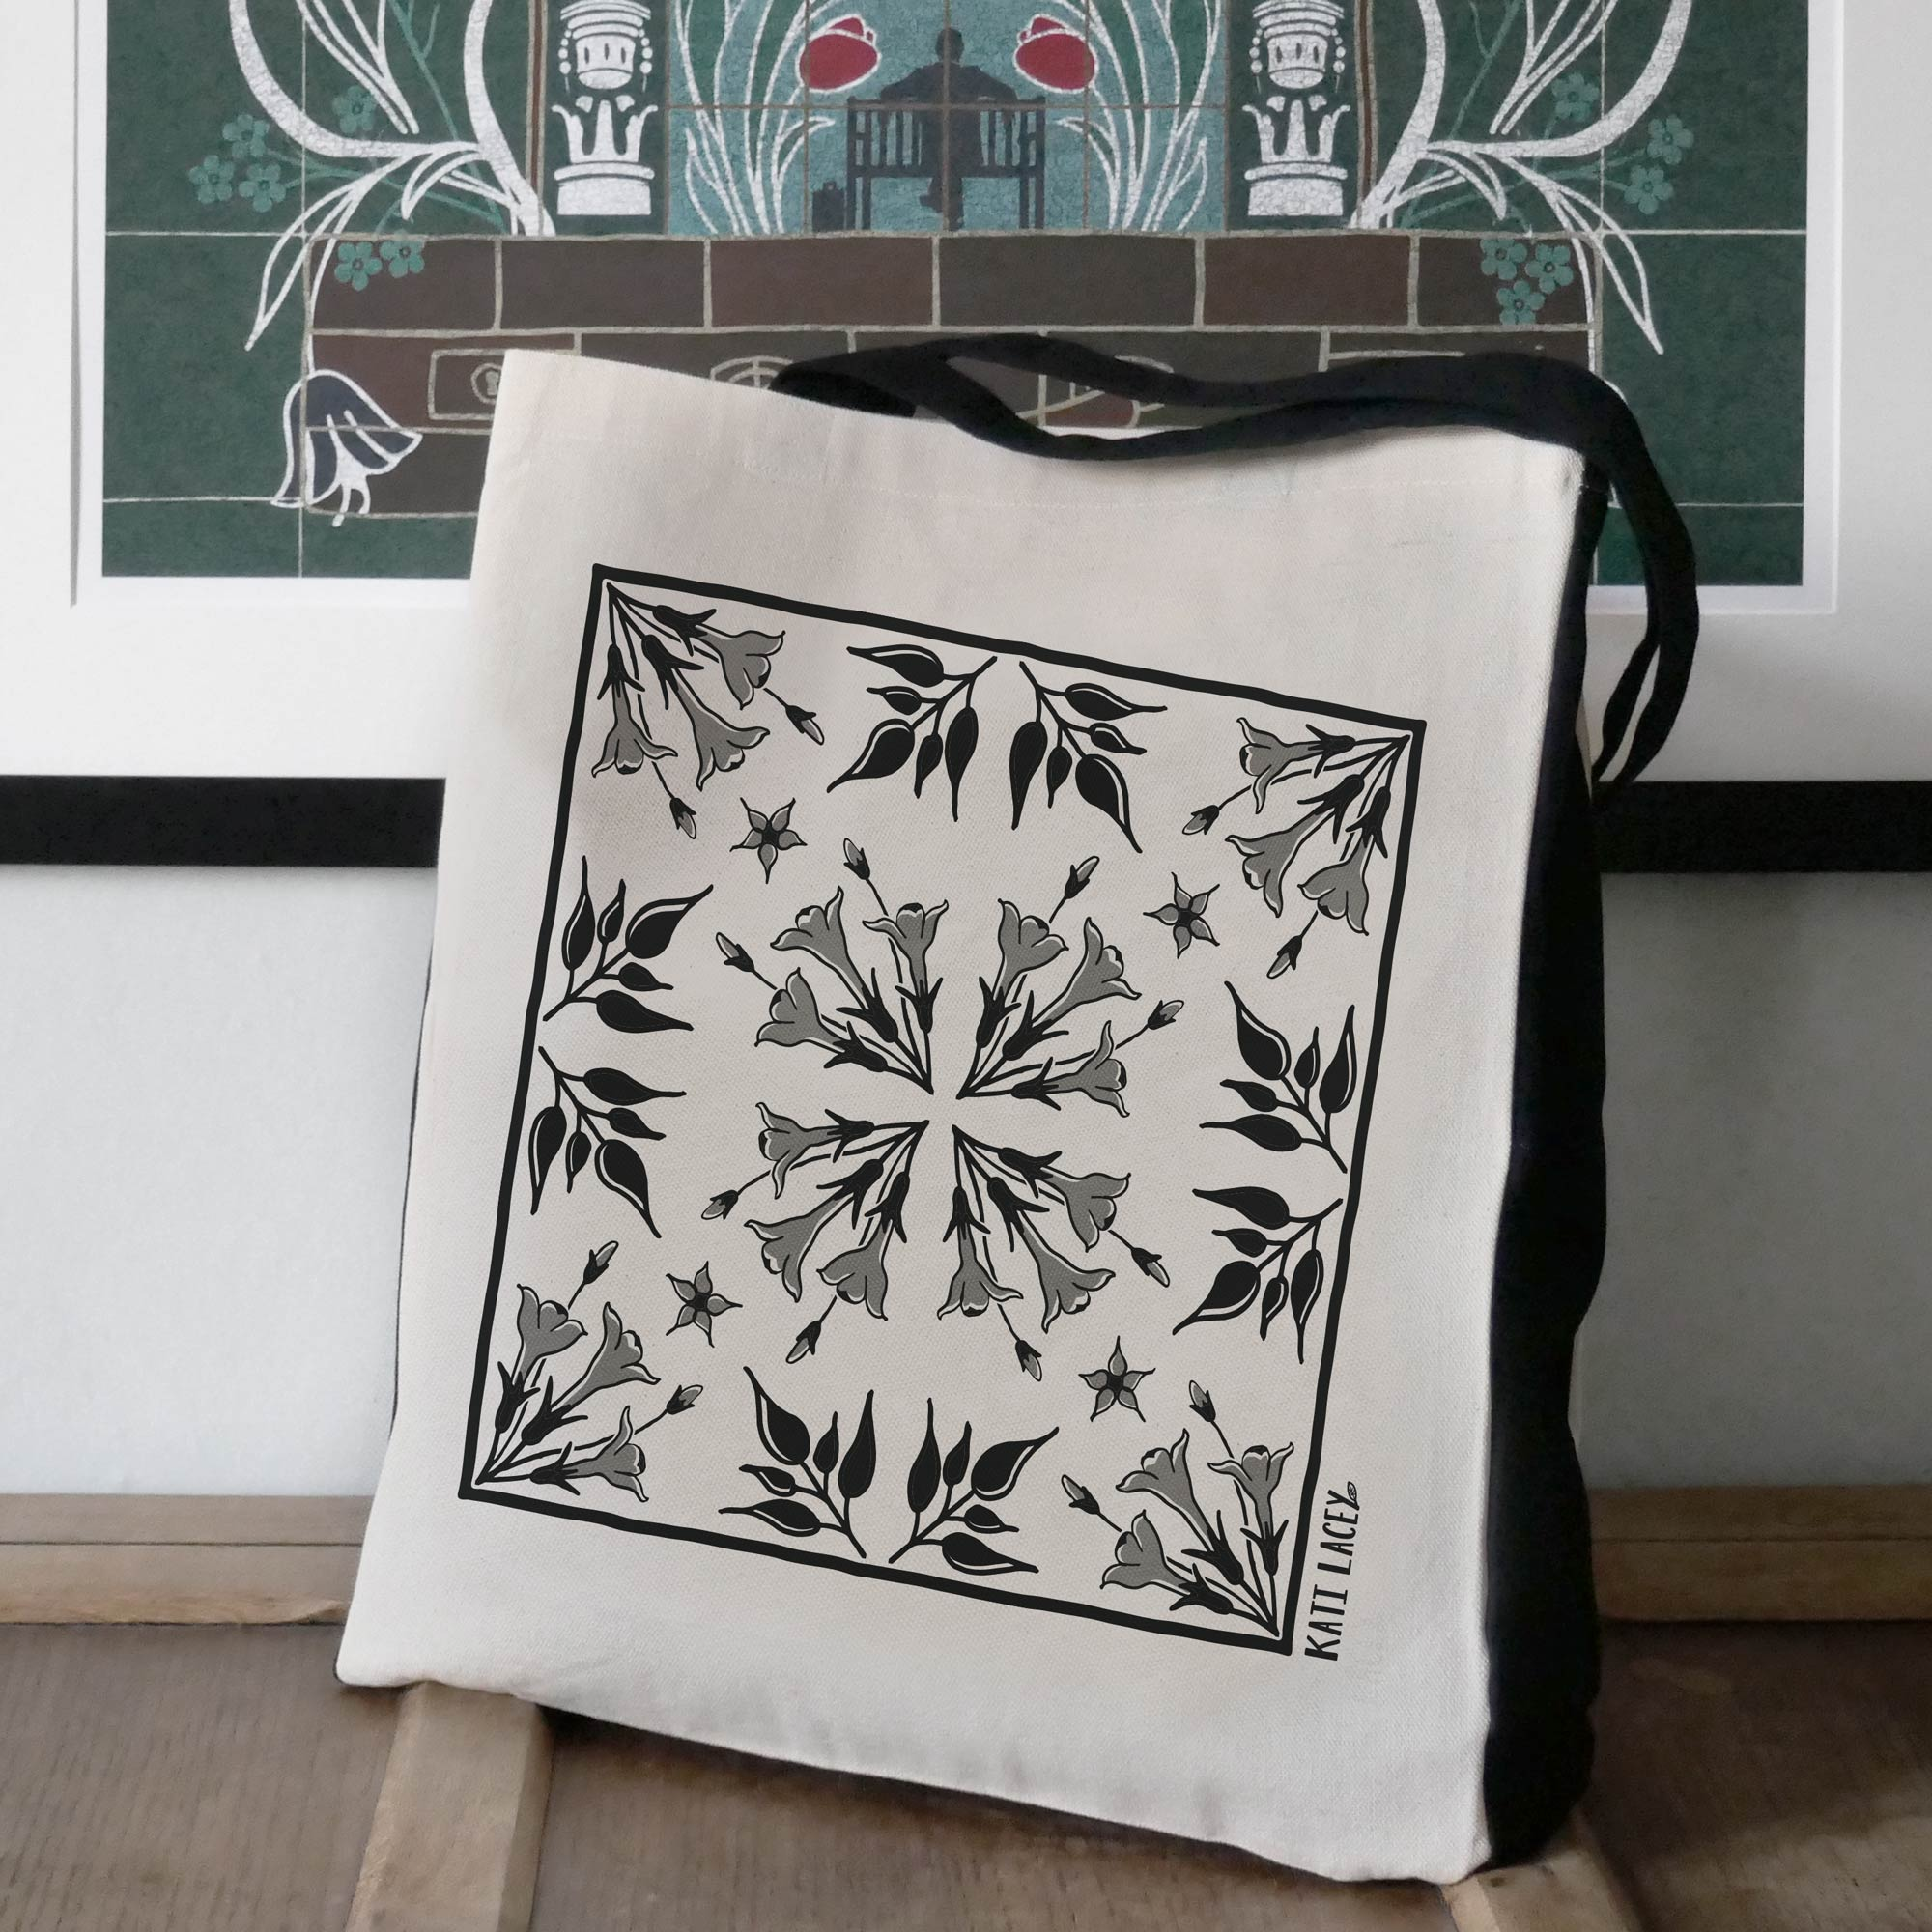 Iznik inspired black and white tile design on large two-tone shopper with Jasmine floral design